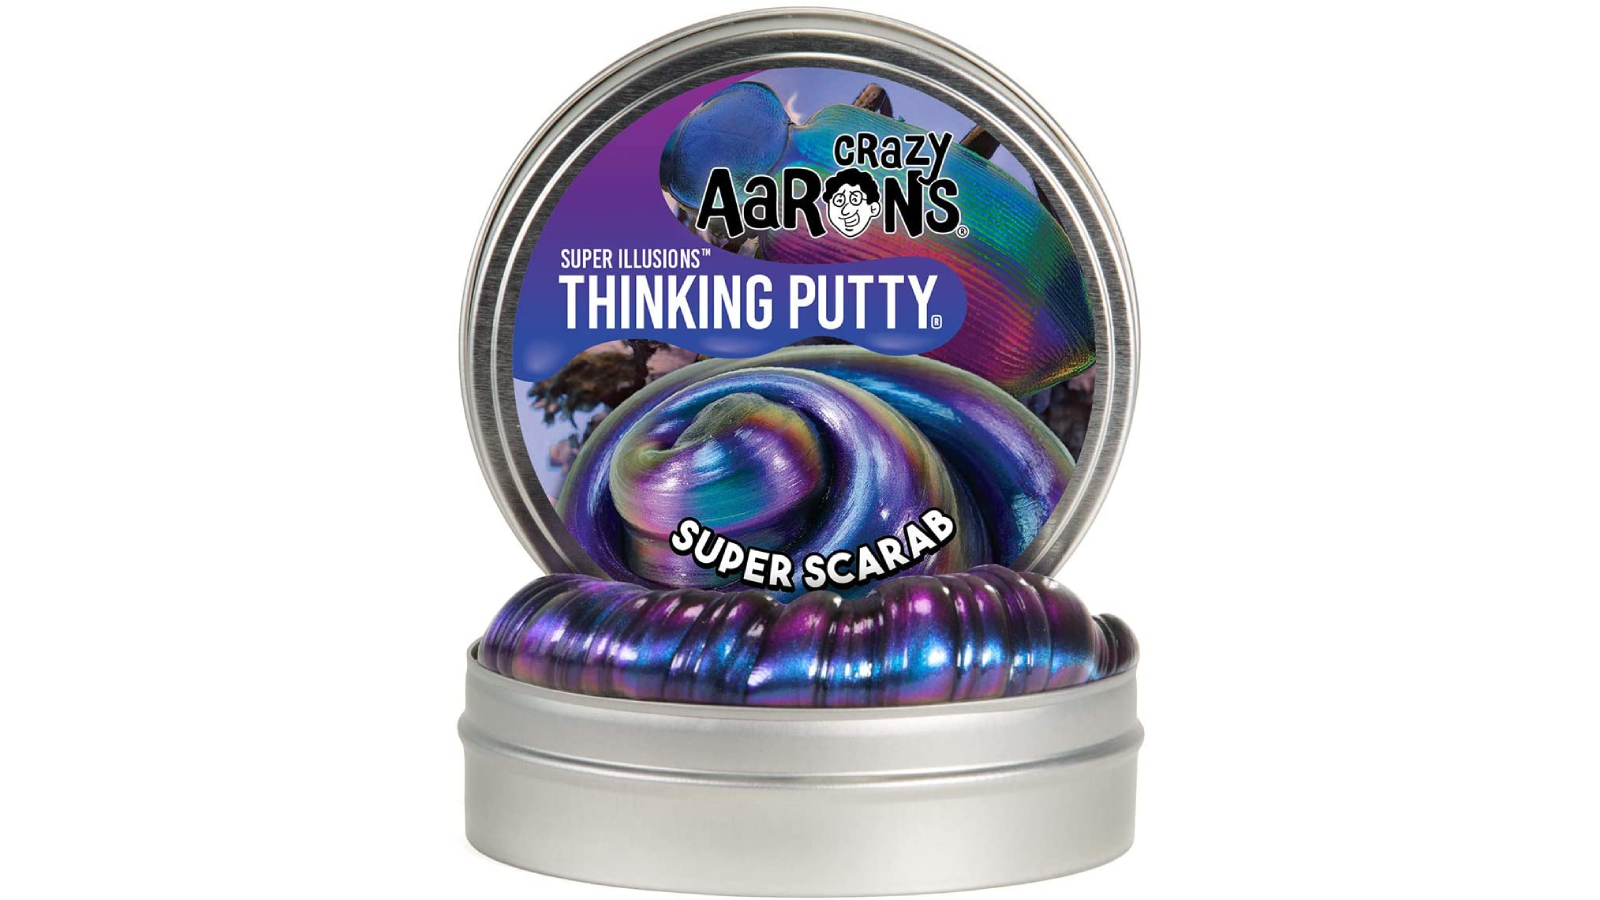 Tin open to show the iridescent putty within.